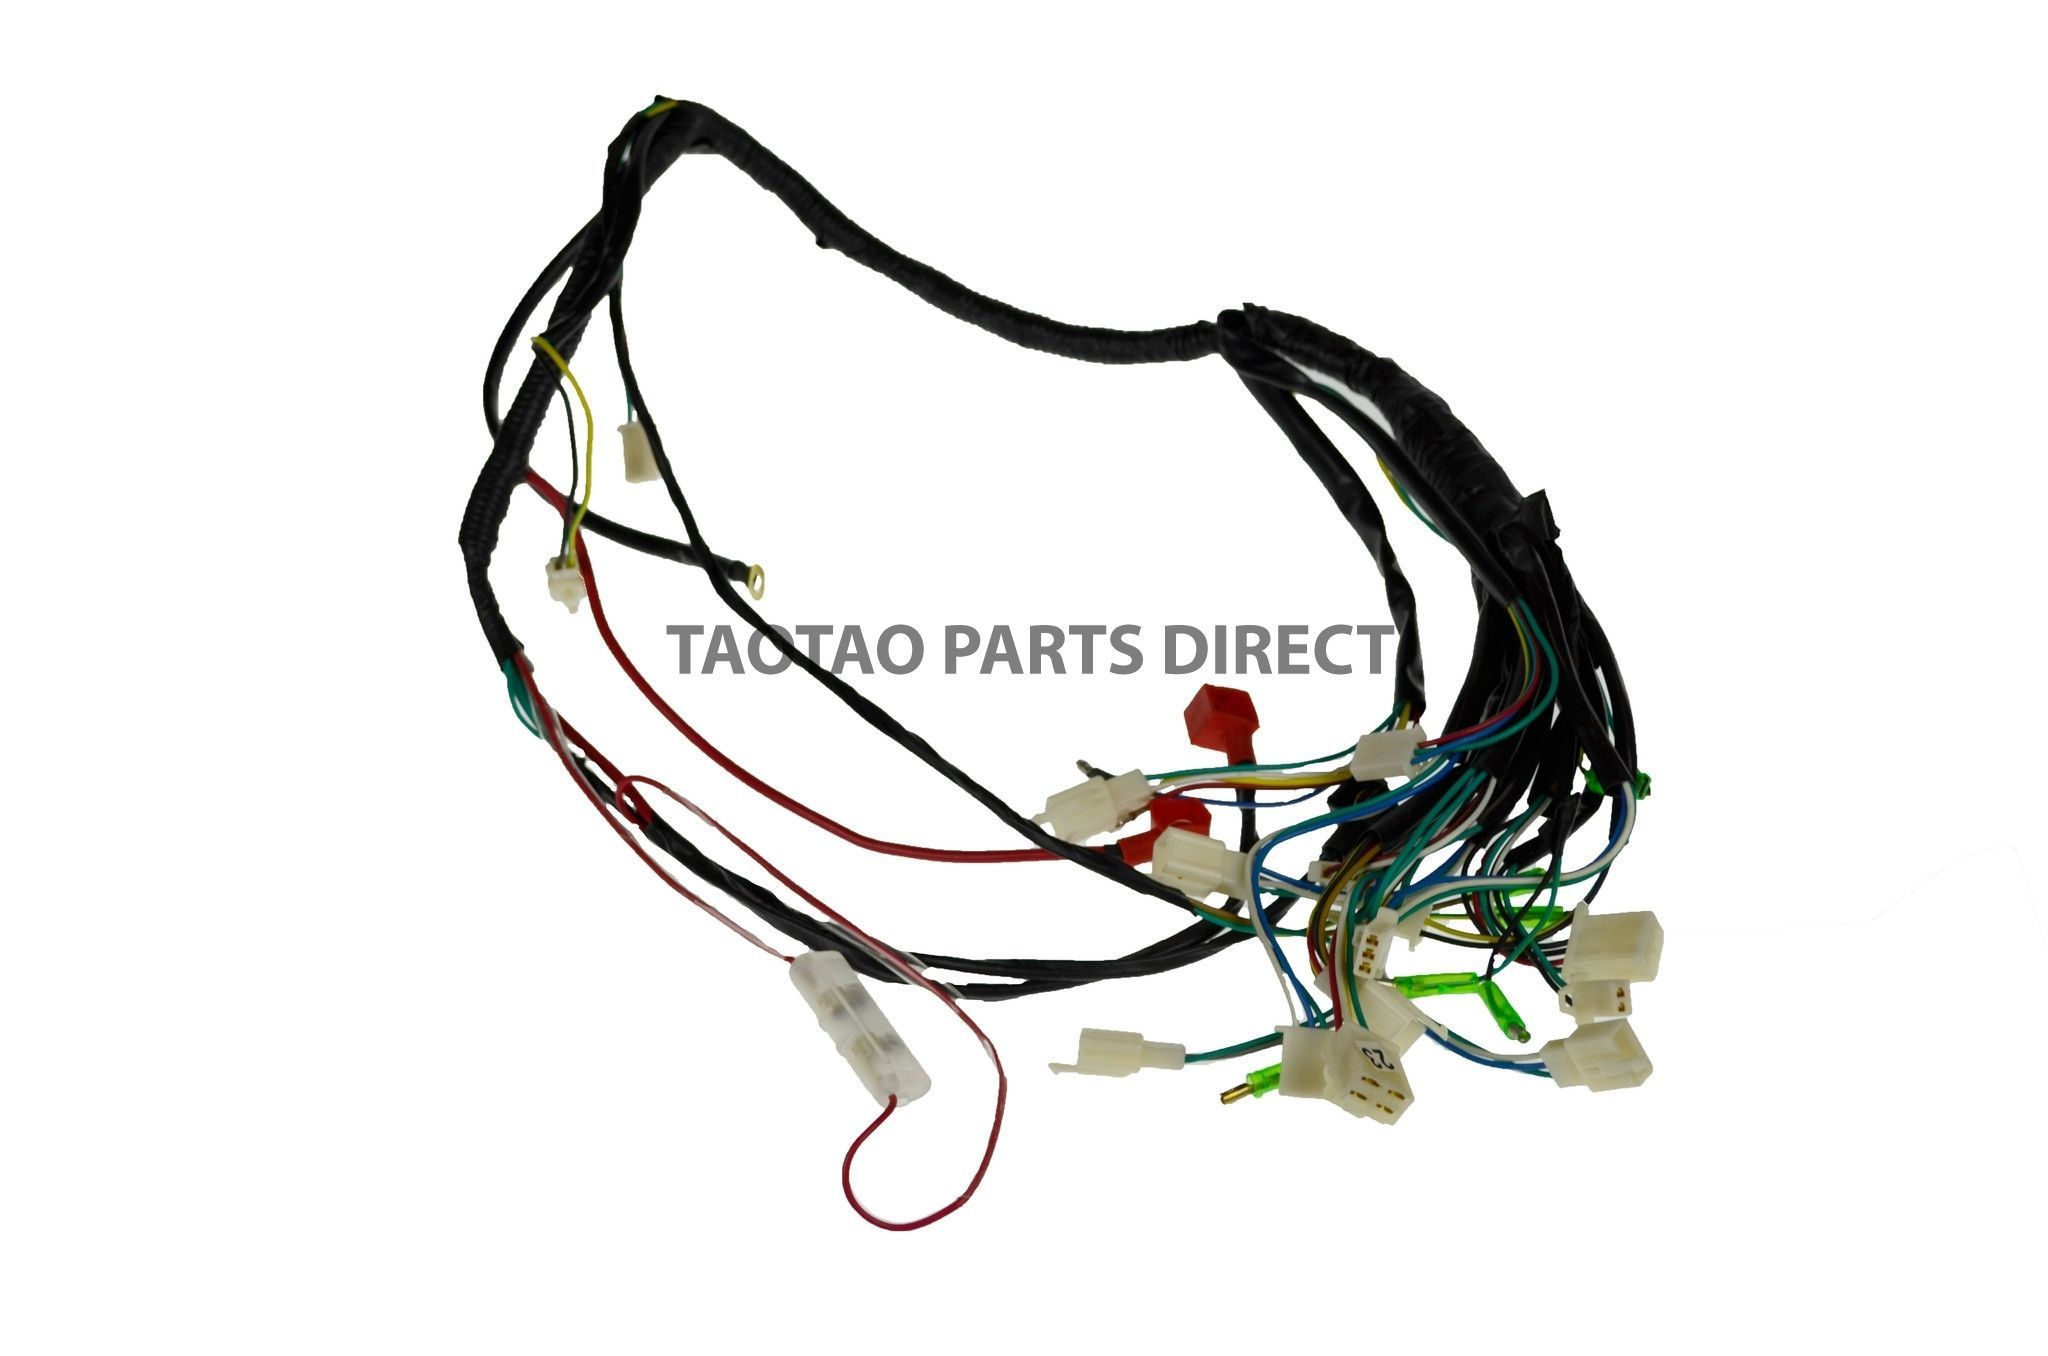 hight resolution of furuno 30 meter signal cable assembly f 1622 1712 wire harnessing cable wire electronics gadgets